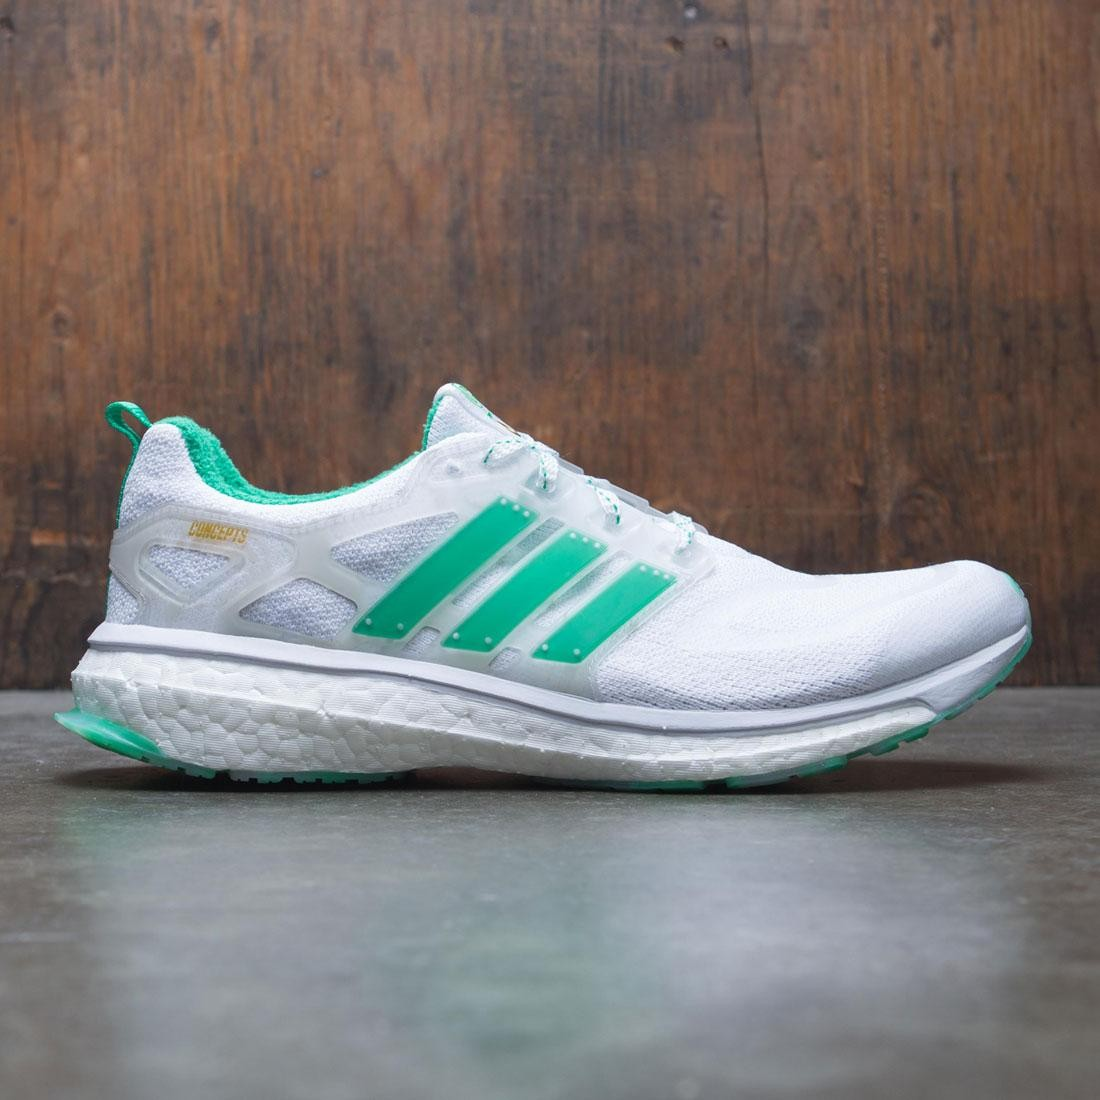 reputable site e6720 6bfba Adidas Consortium x Concepts Men Energy BOOST white blast emerald power teal